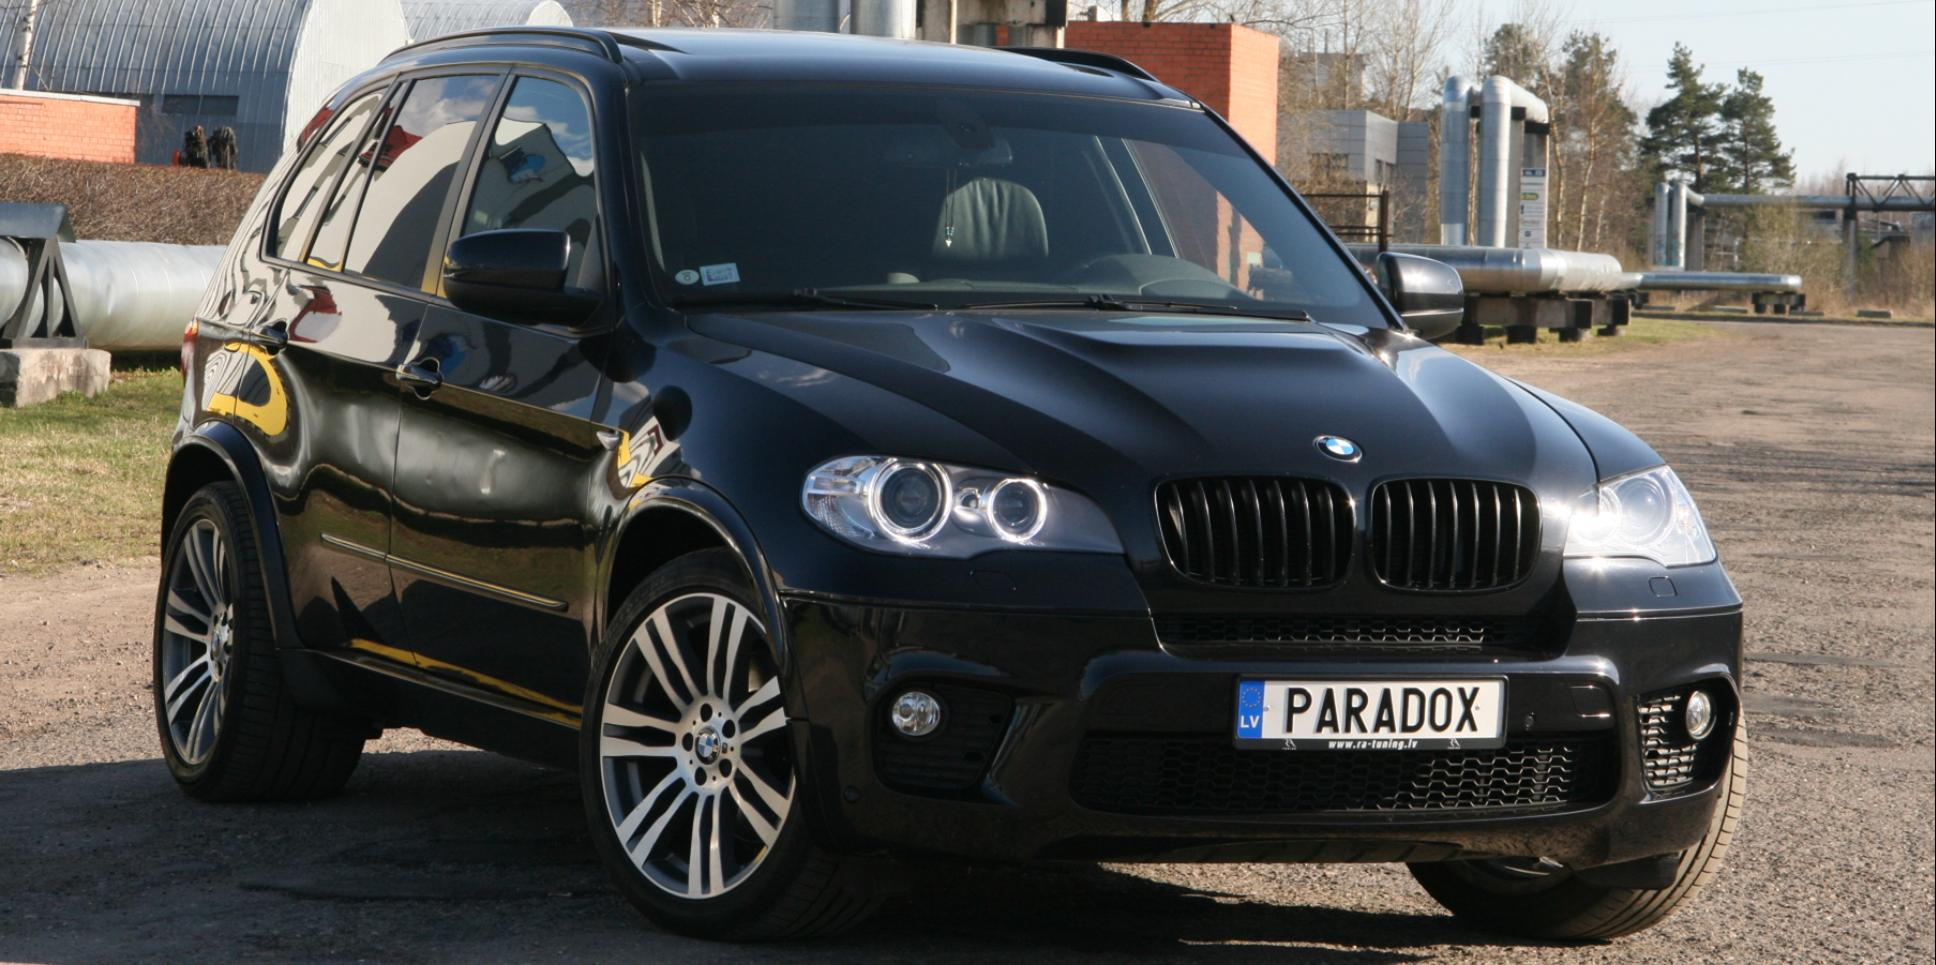 2009 Bmw X5 View All 2009 Bmw X5 At Cardomain